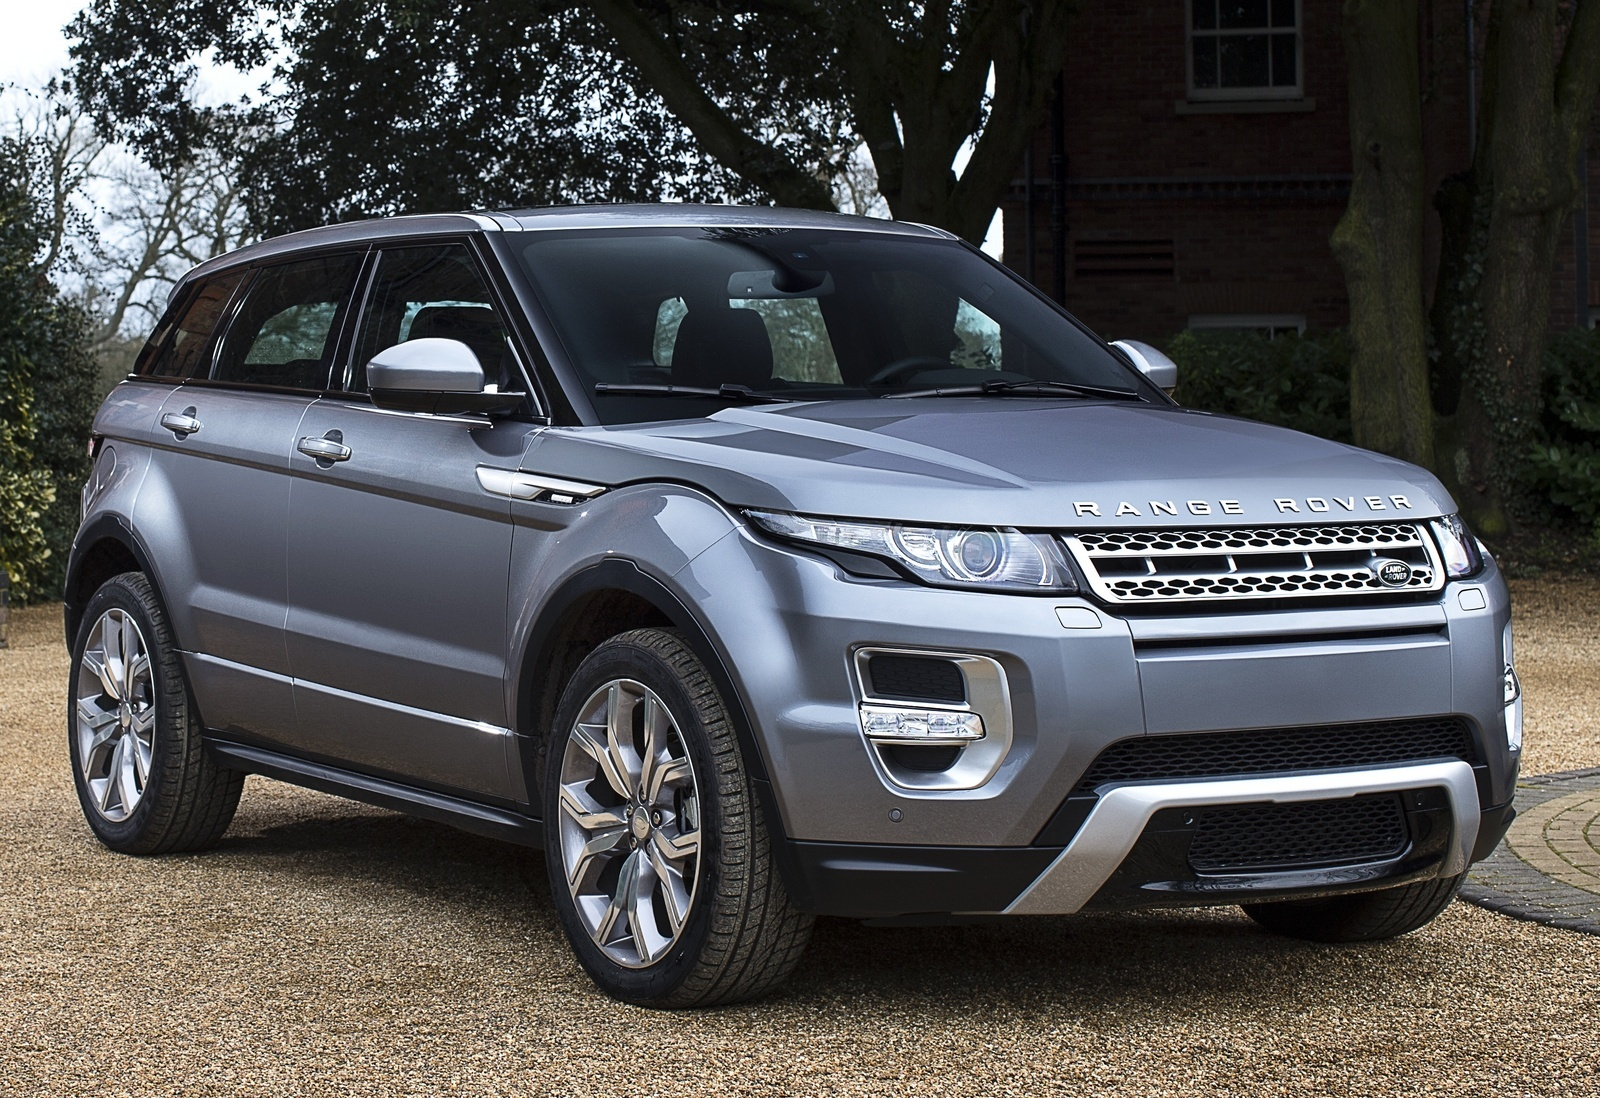 New 2015 2016 Land Rover Range Rover Evoque For Sale